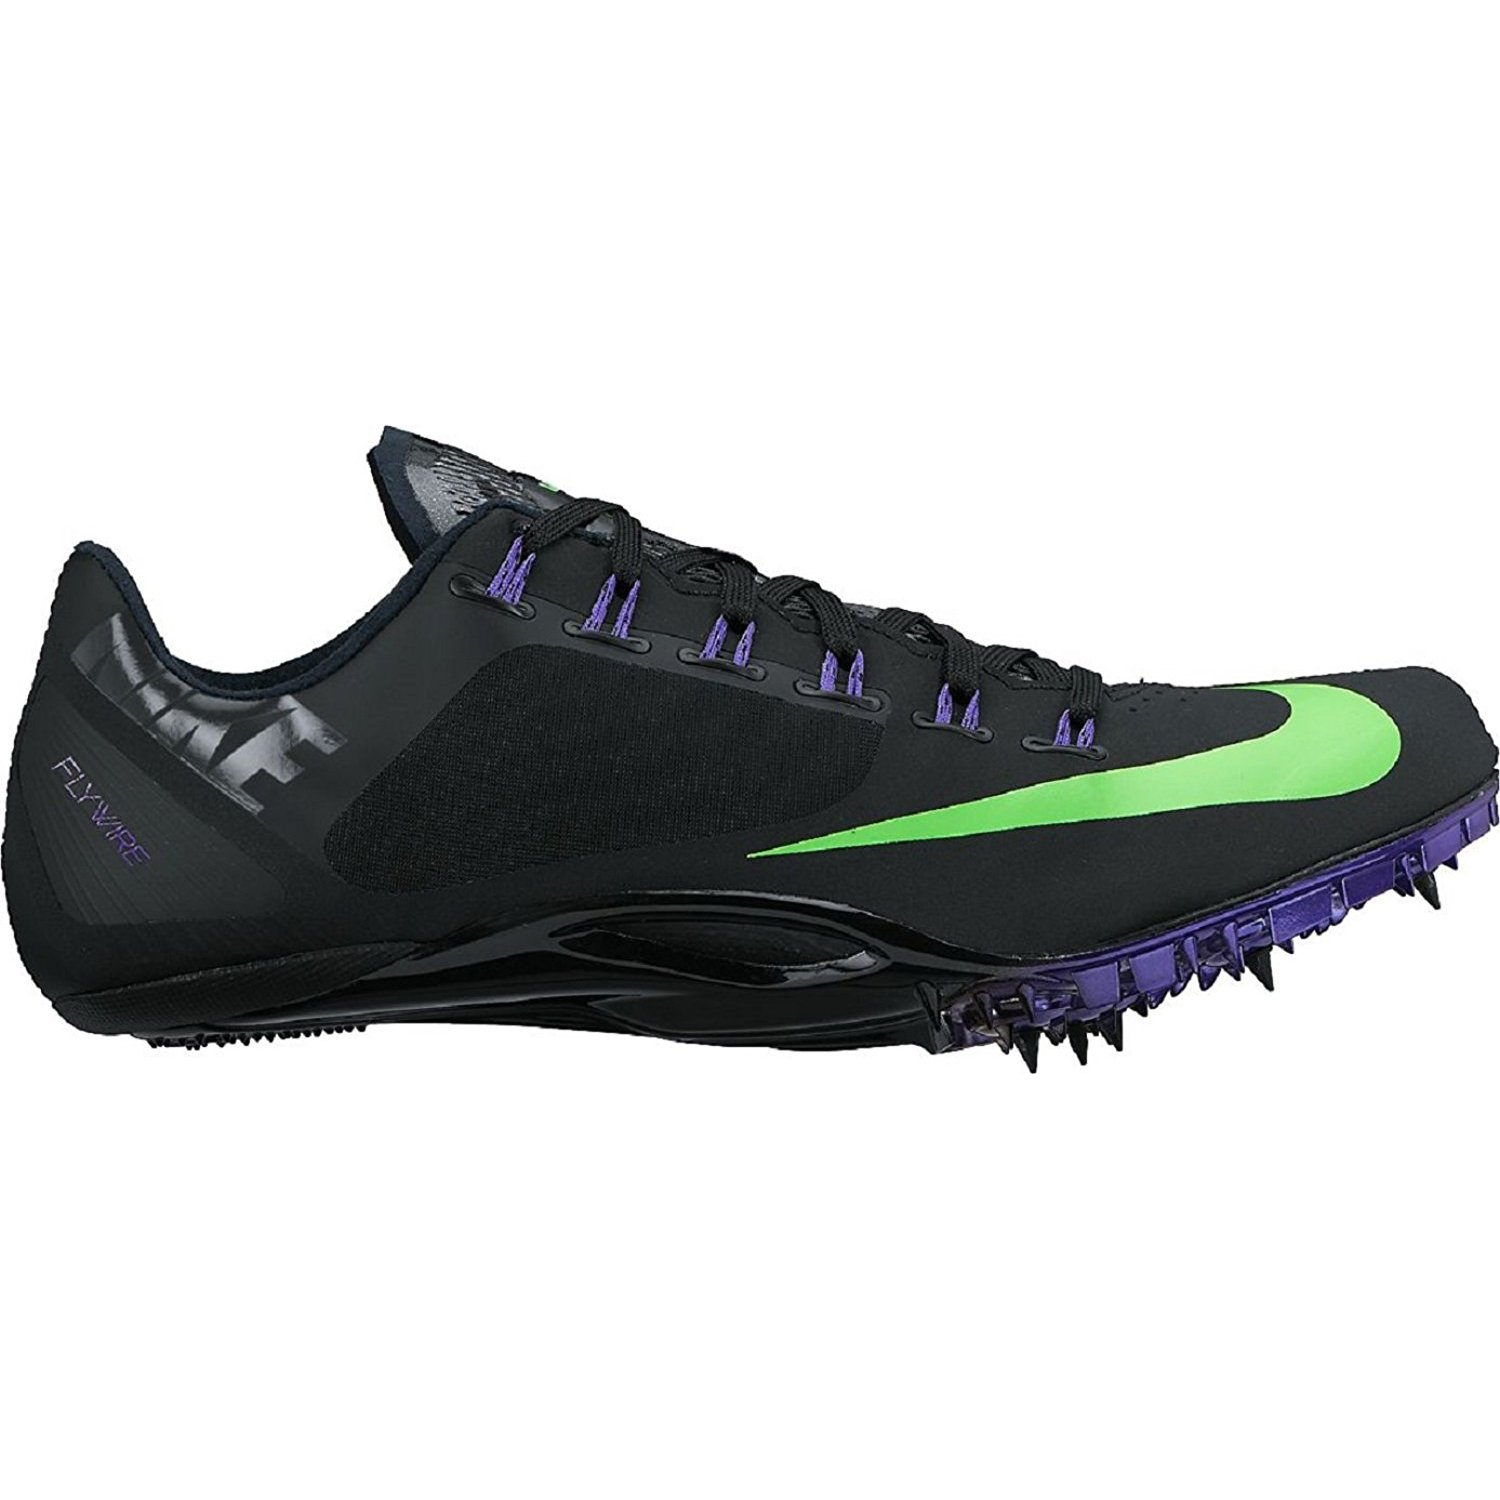 f2d2ce6b622e Nike Zoom Superfly R4 Sprint Track Spikes Shoes Black Green Mens Size 4.5 ( Womens 6)  Amazon.ca  Shoes   Handbags